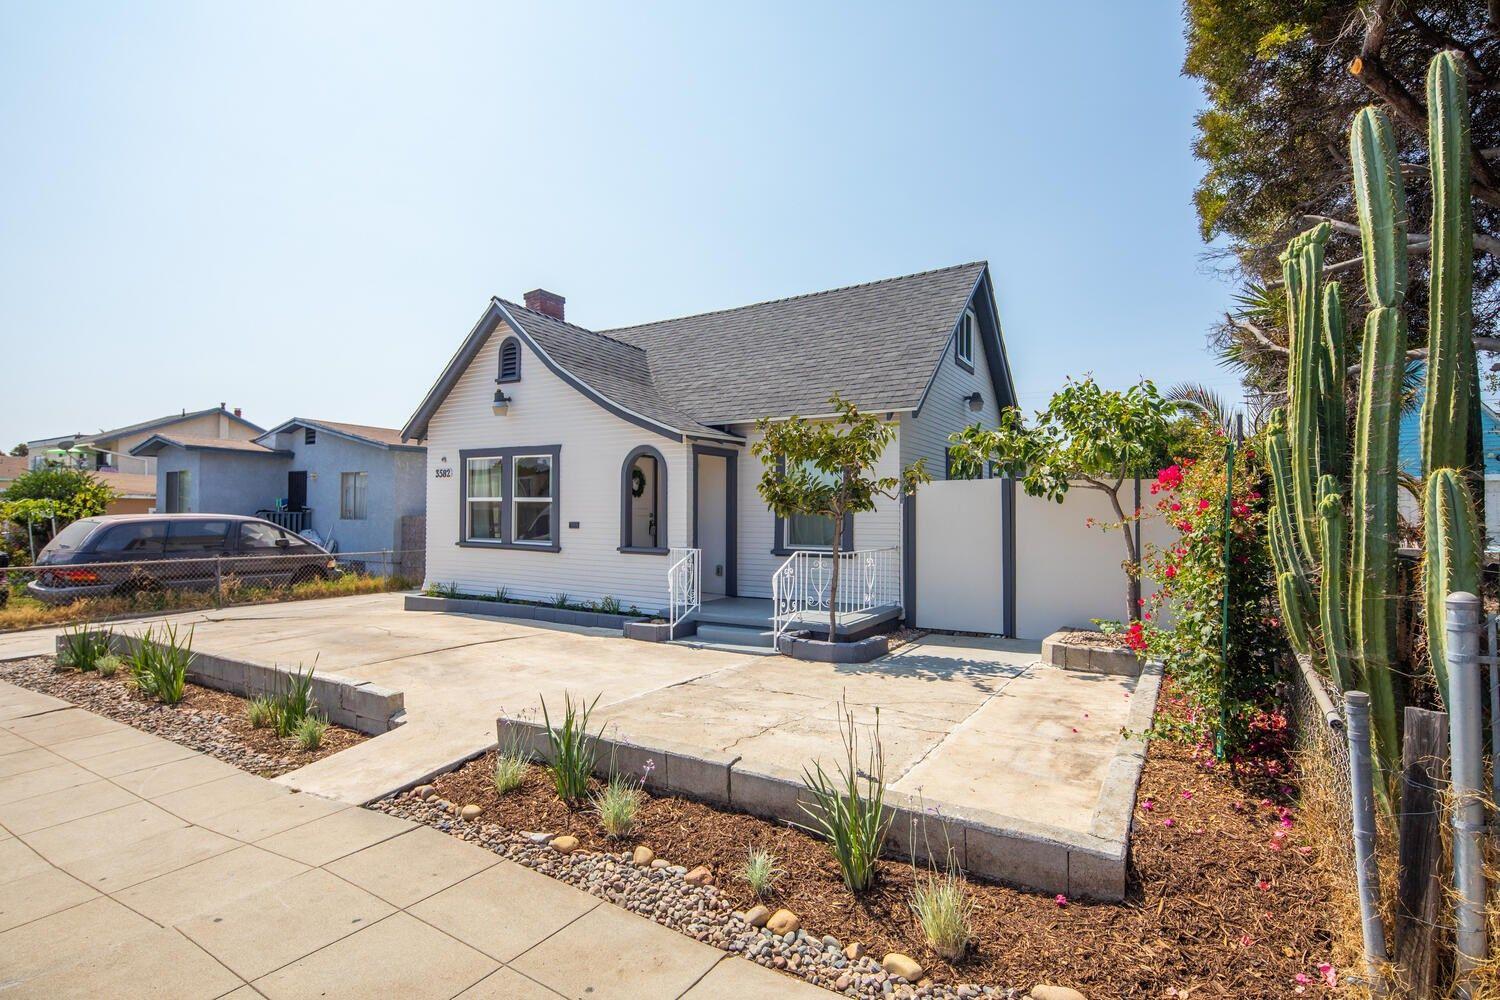 Main Photo: CITY HEIGHTS House for sale : 5 bedrooms : 3582 Van Dyke Ave in San Diego